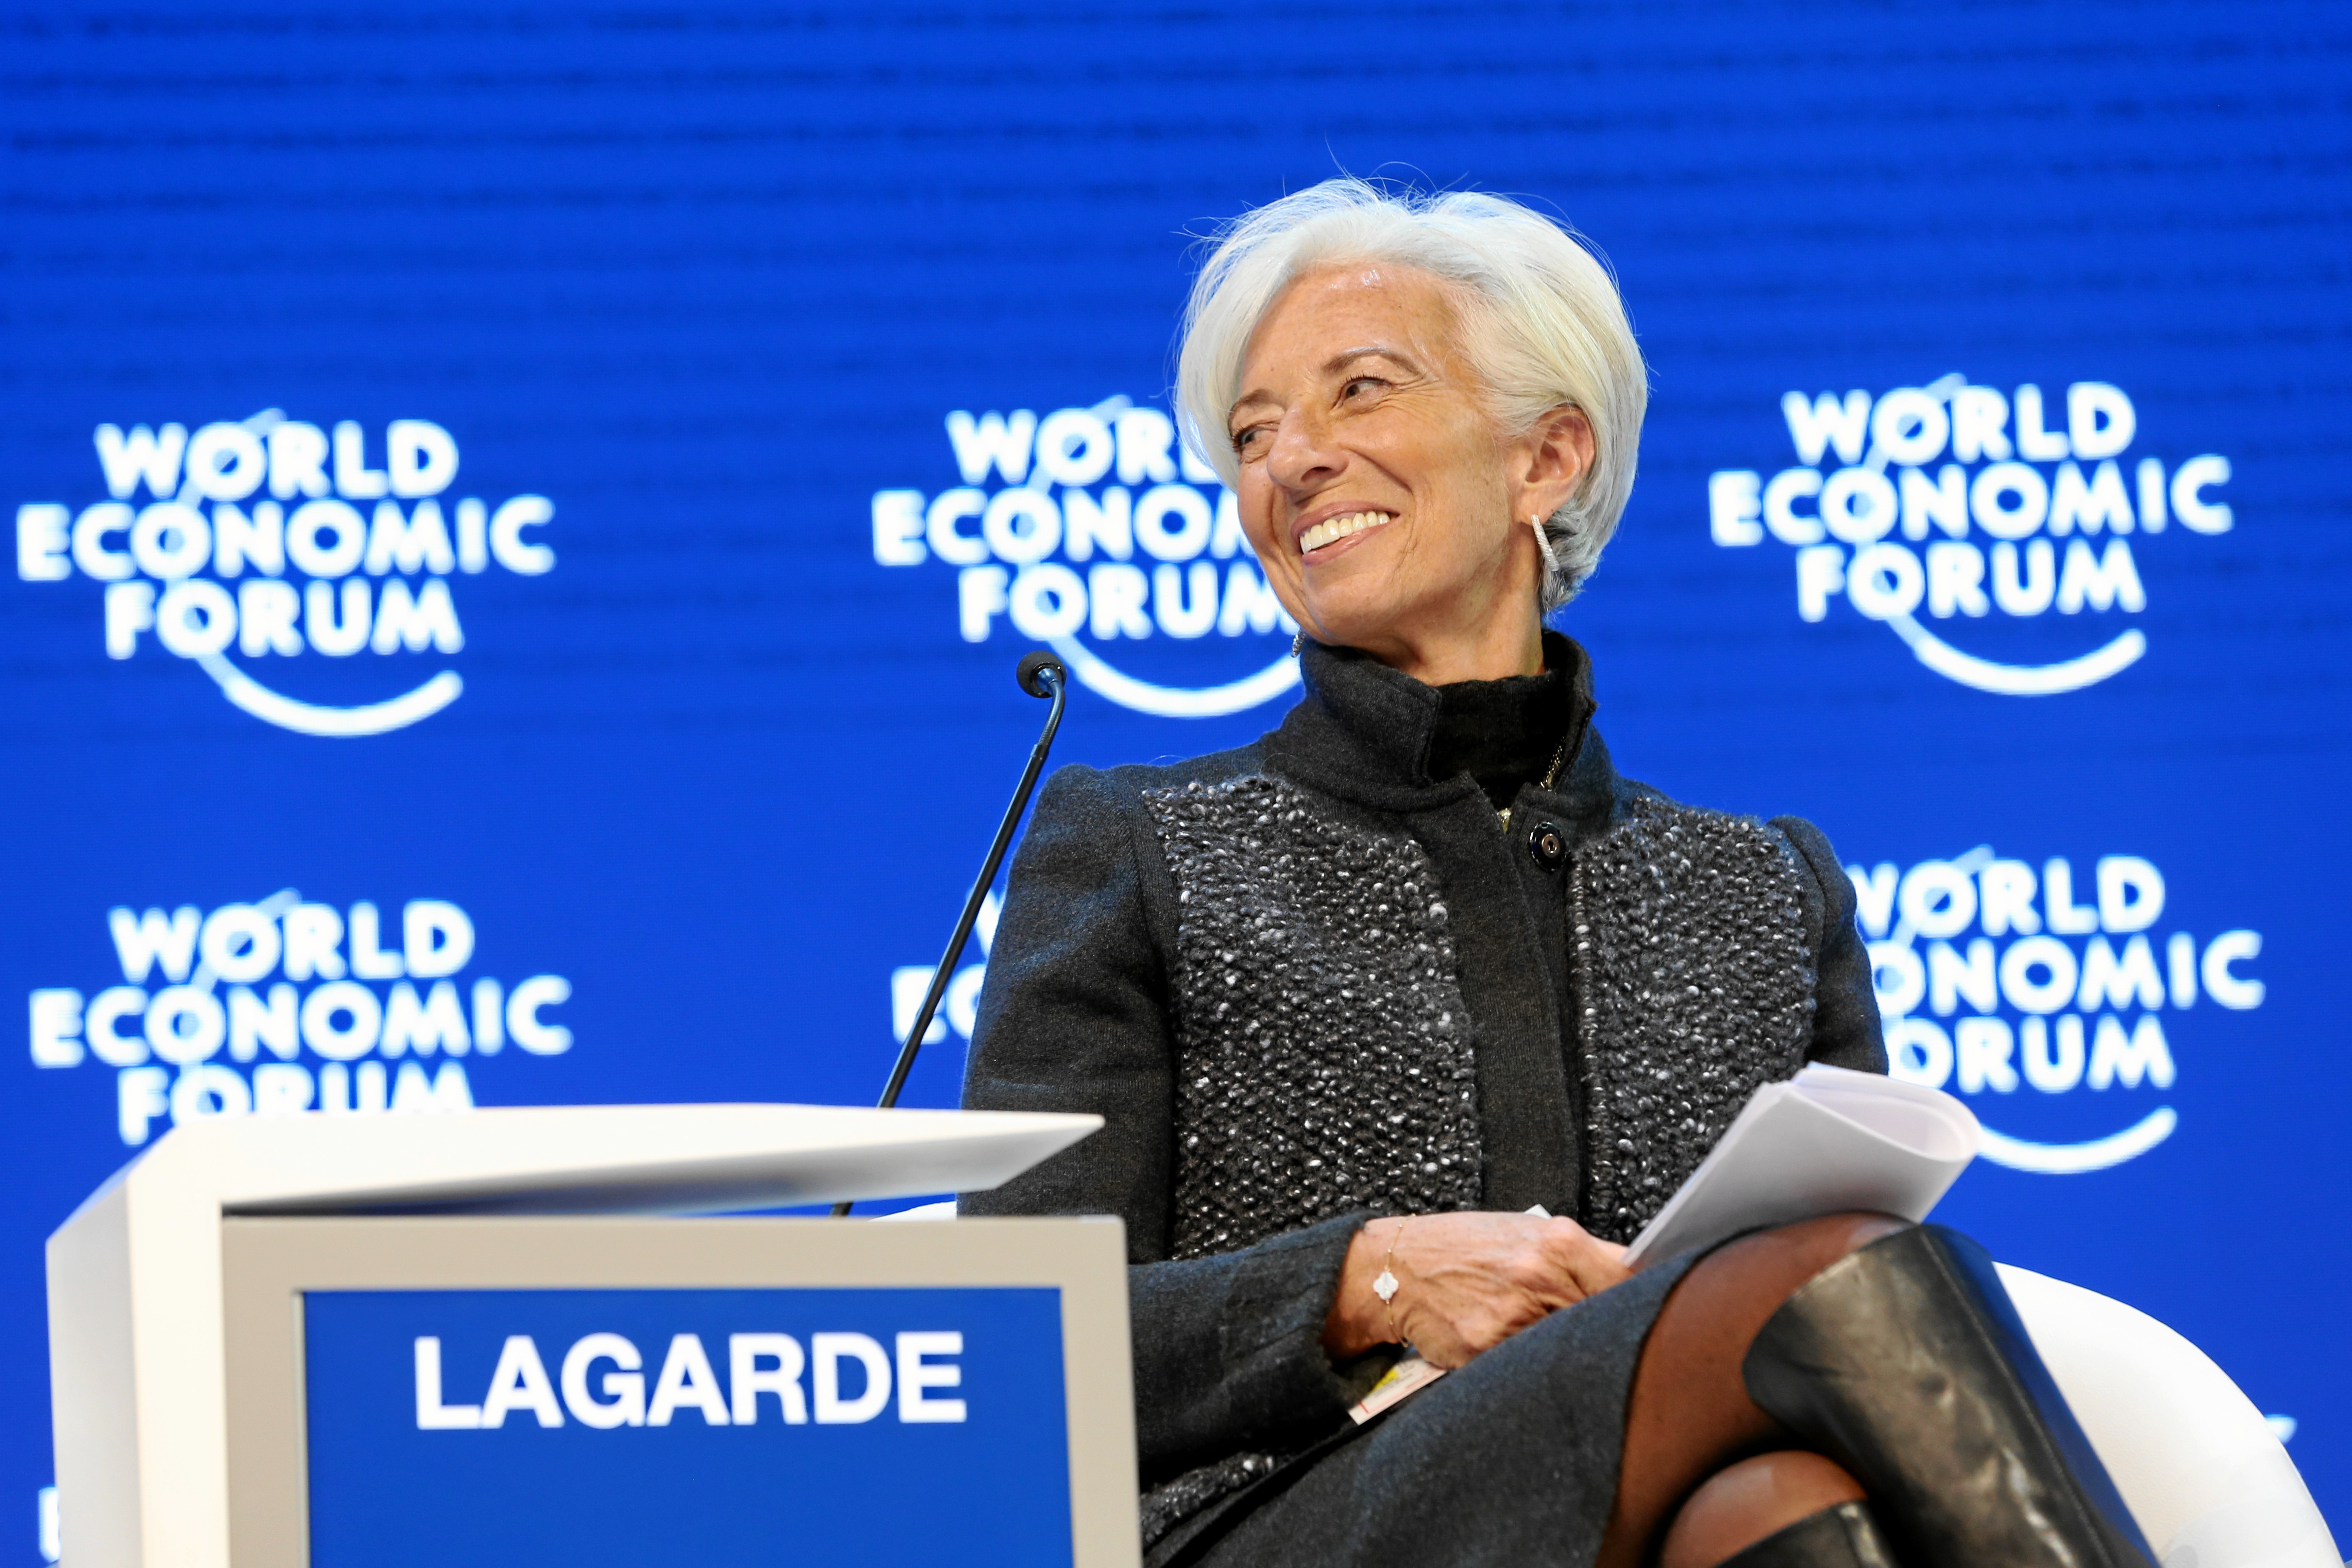 Christine Lagarde smiles during the World Economic Forum Annual Meeting 2016 in Davos, Switzerland, January 23, 2016.